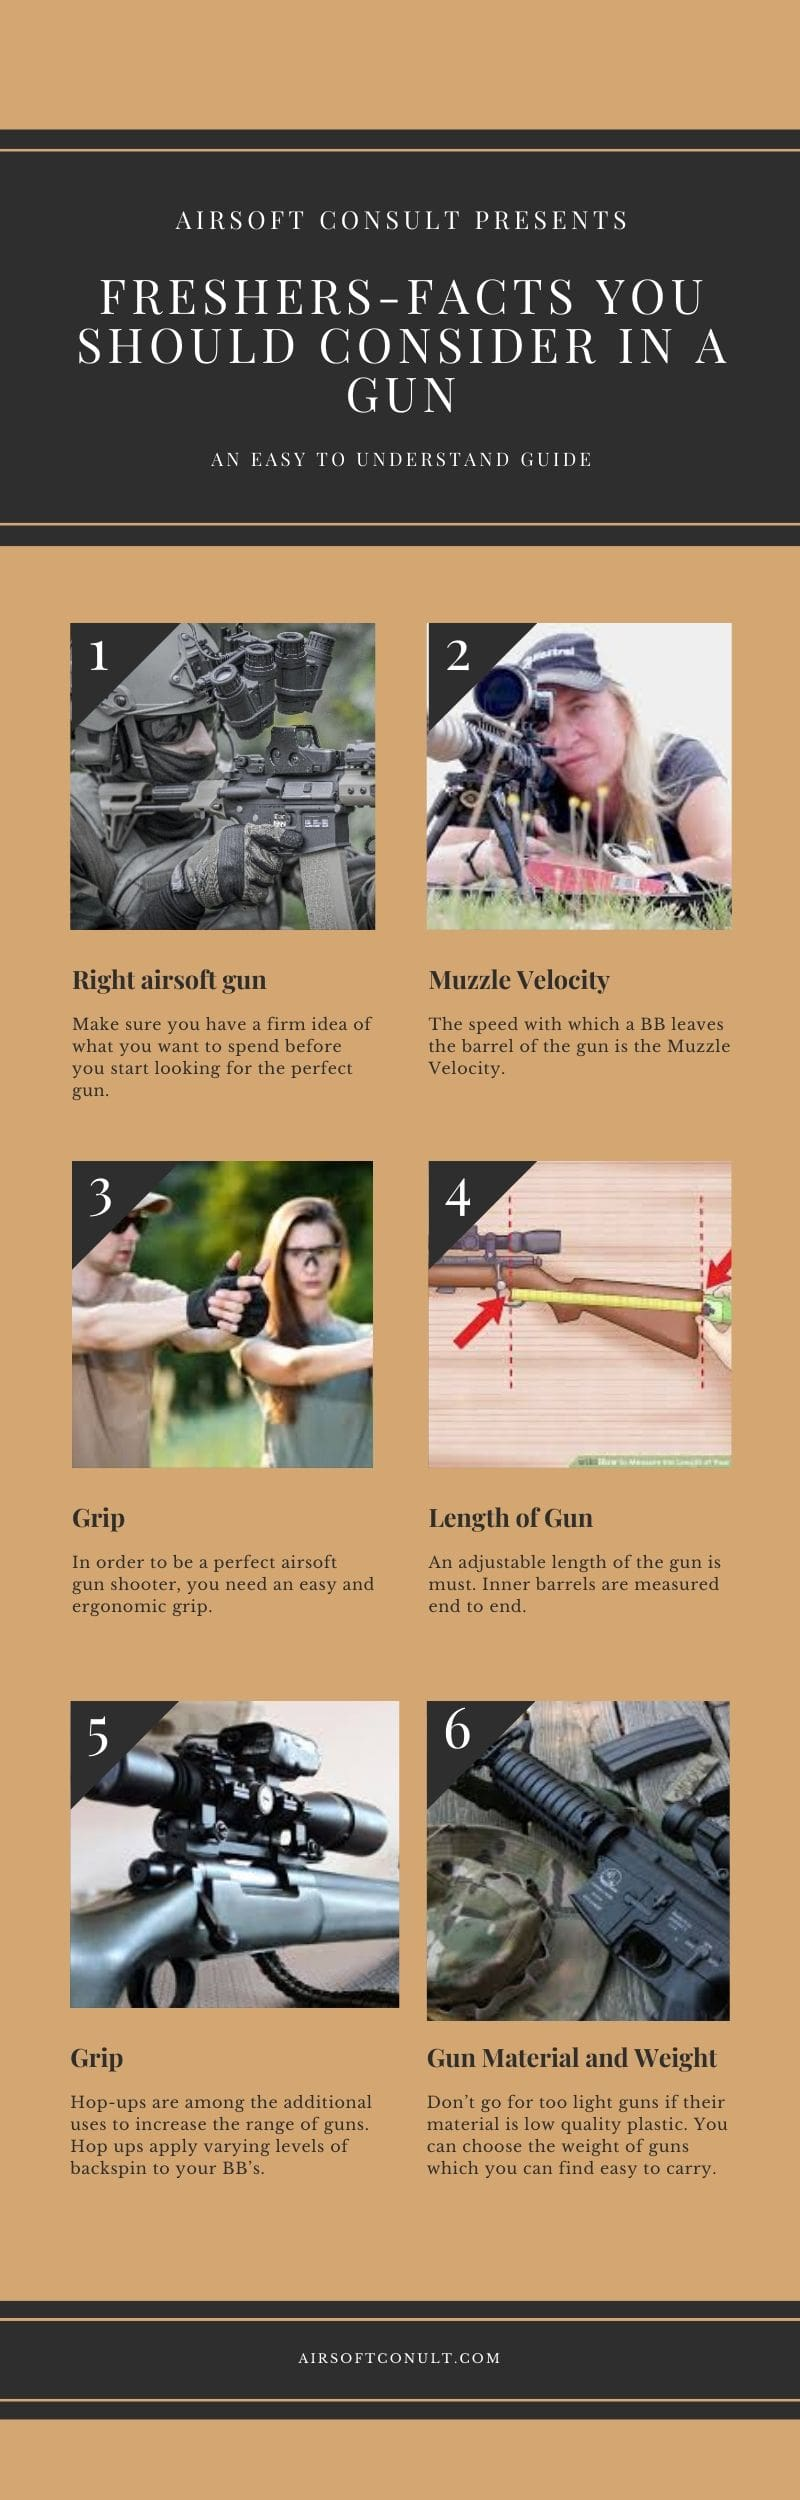 Facts to know in an Airsoft Gun